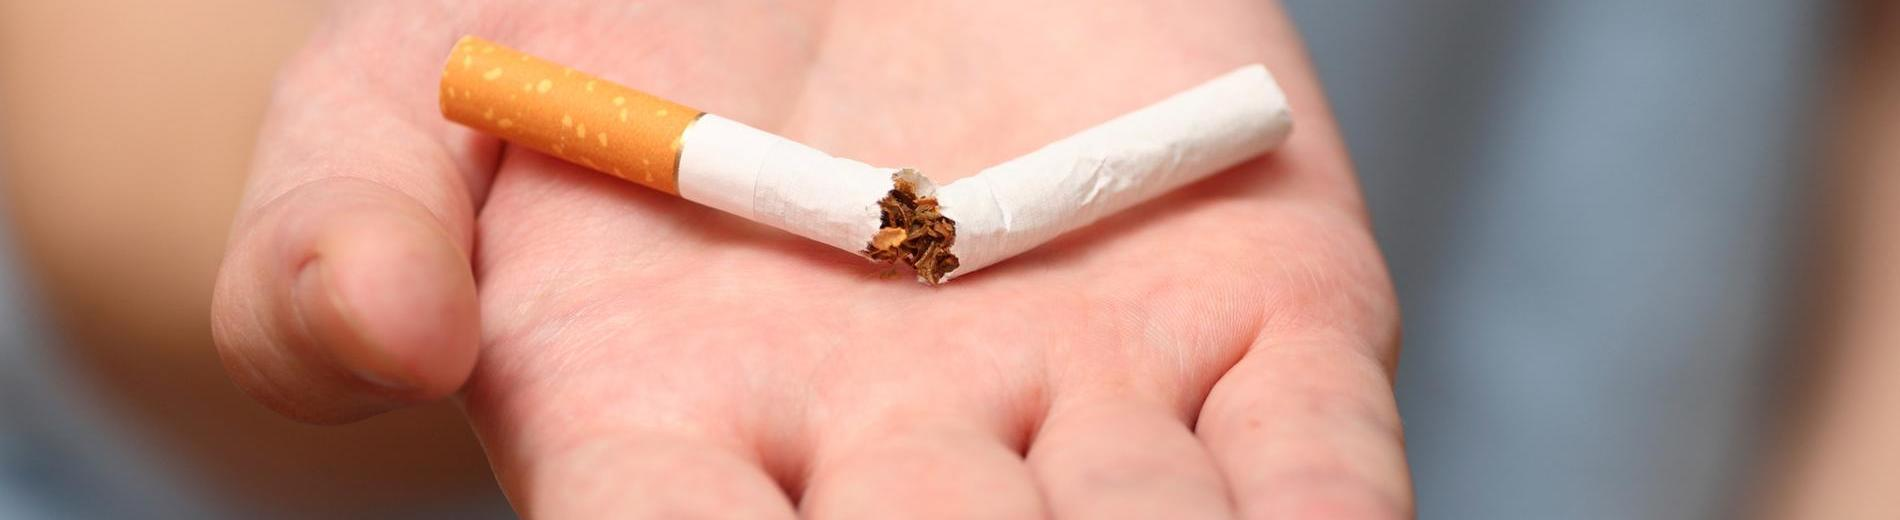 Man trying to quit smoking. A broken cigarette on the palm. Conceptual image. Close-up.